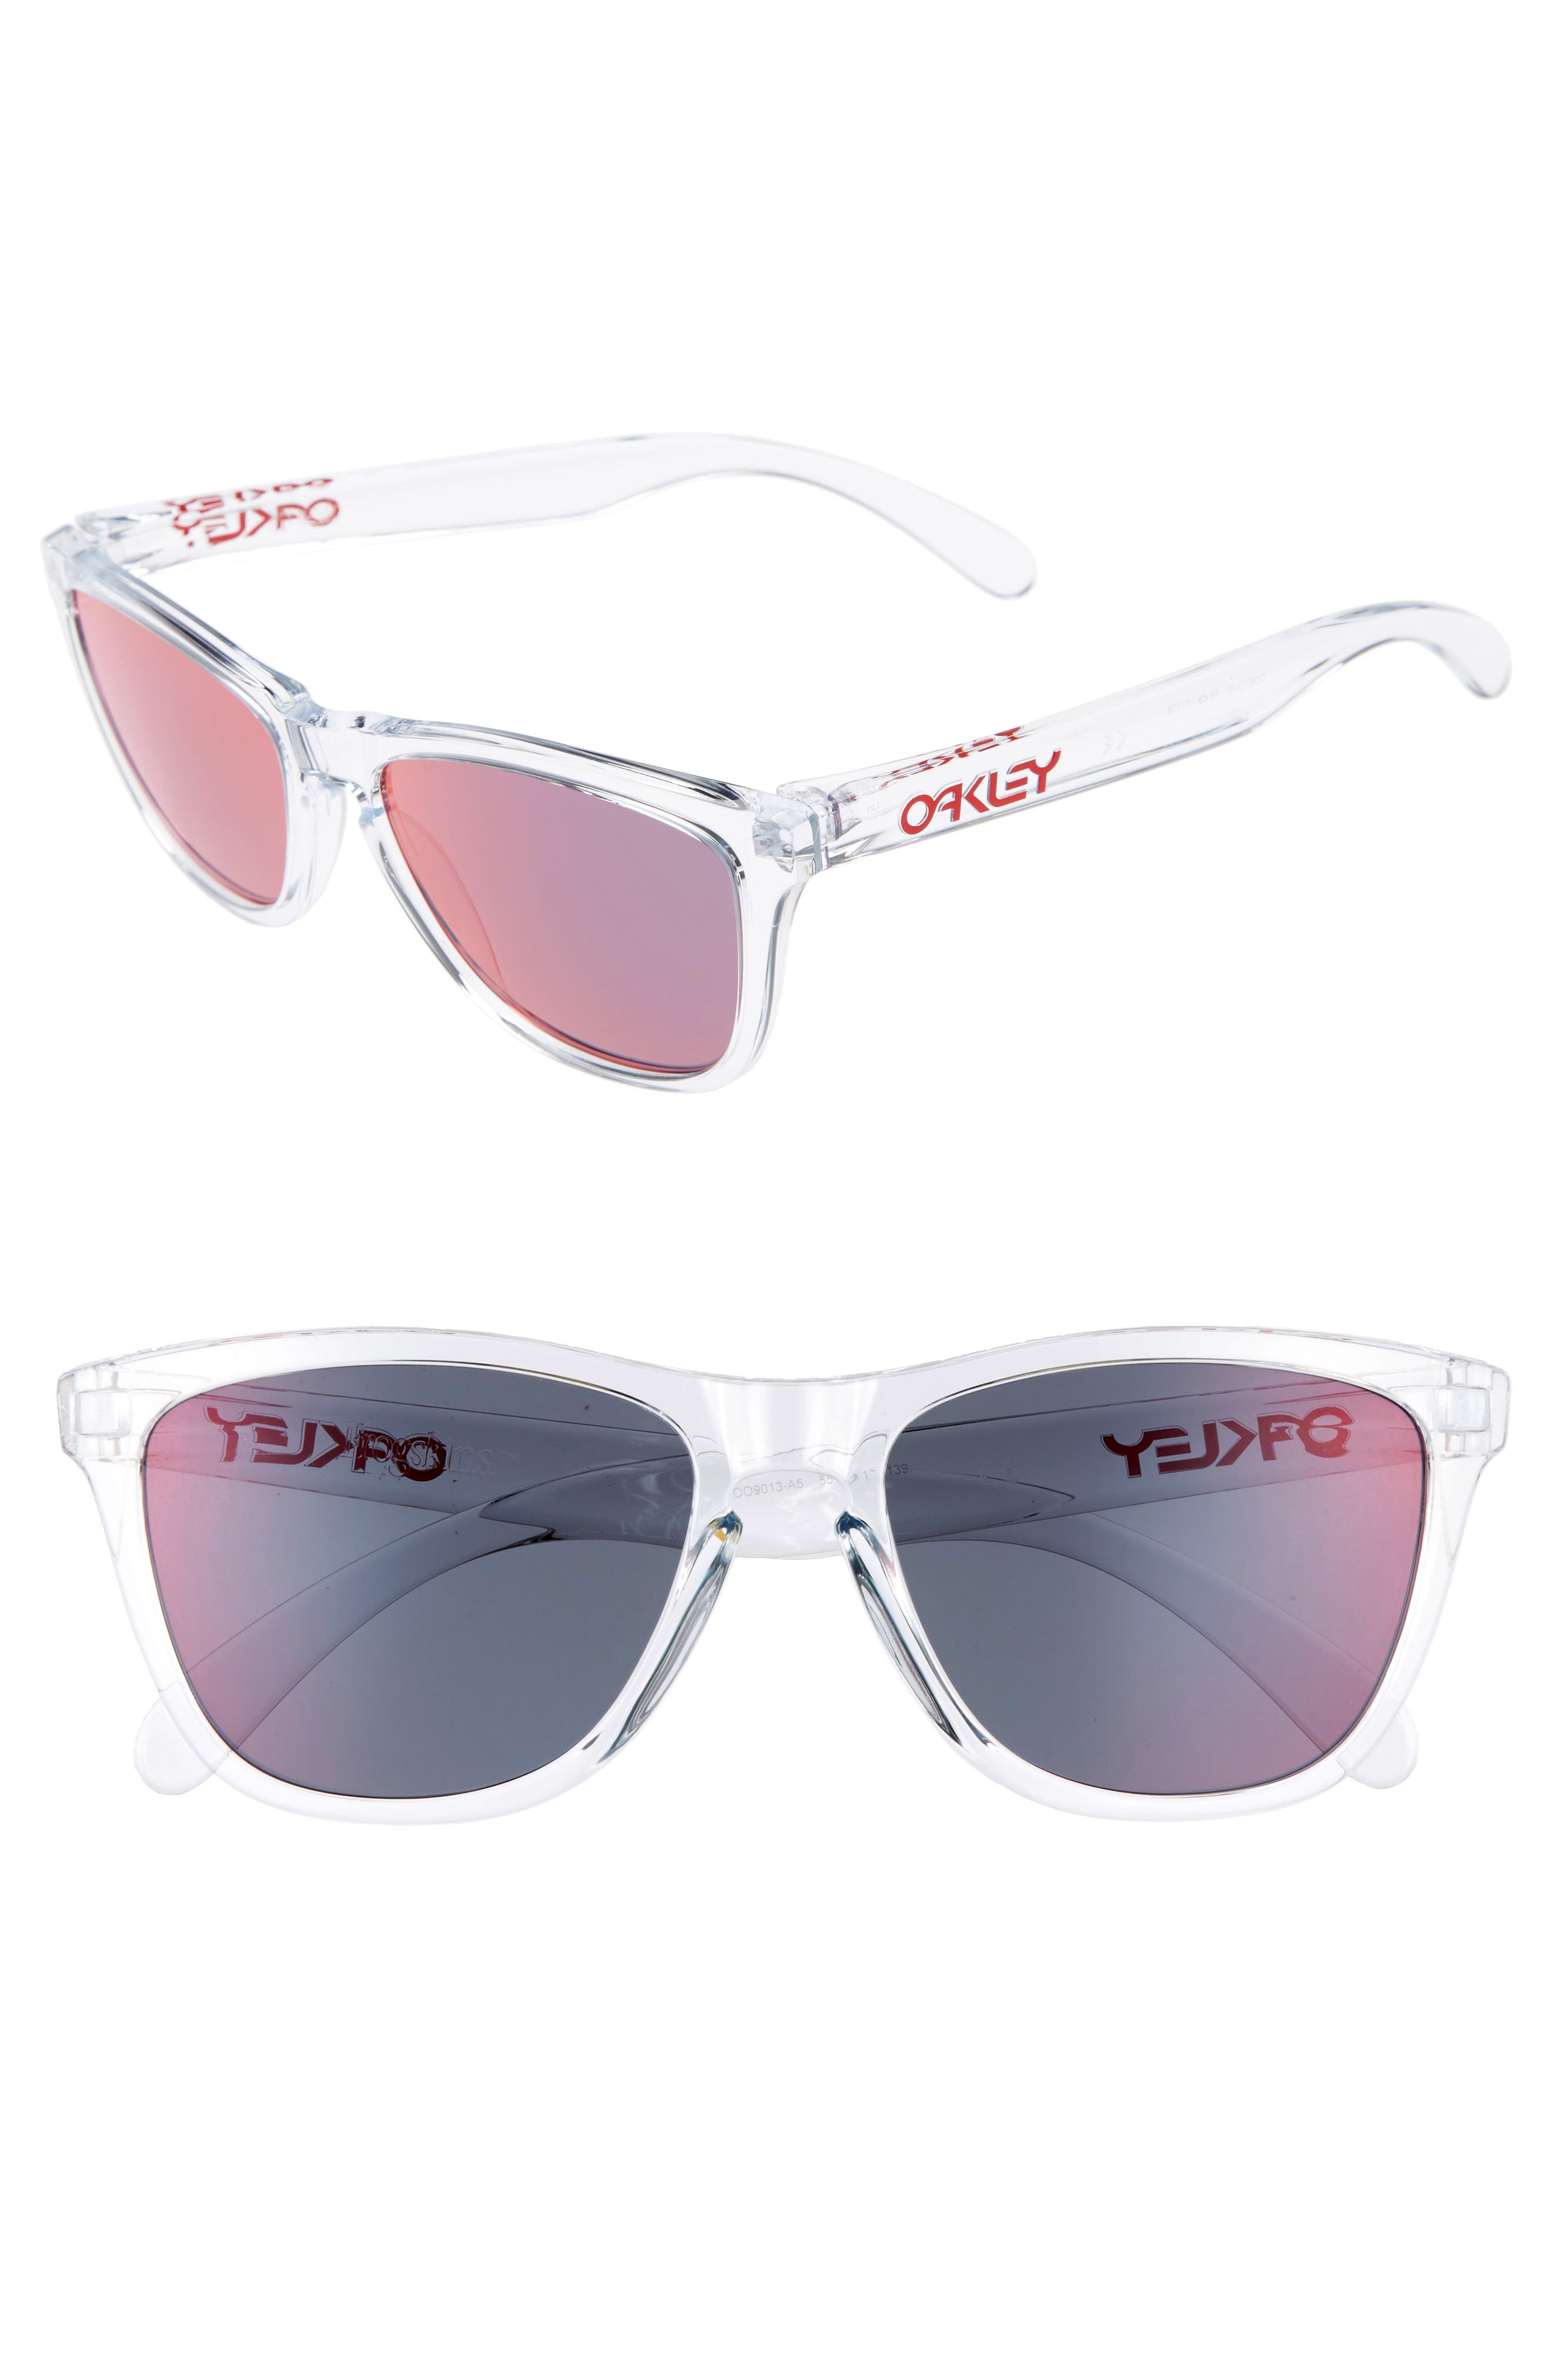 Frogskins 55mm Sunglasses,                             Main thumbnail 1, color,                             600